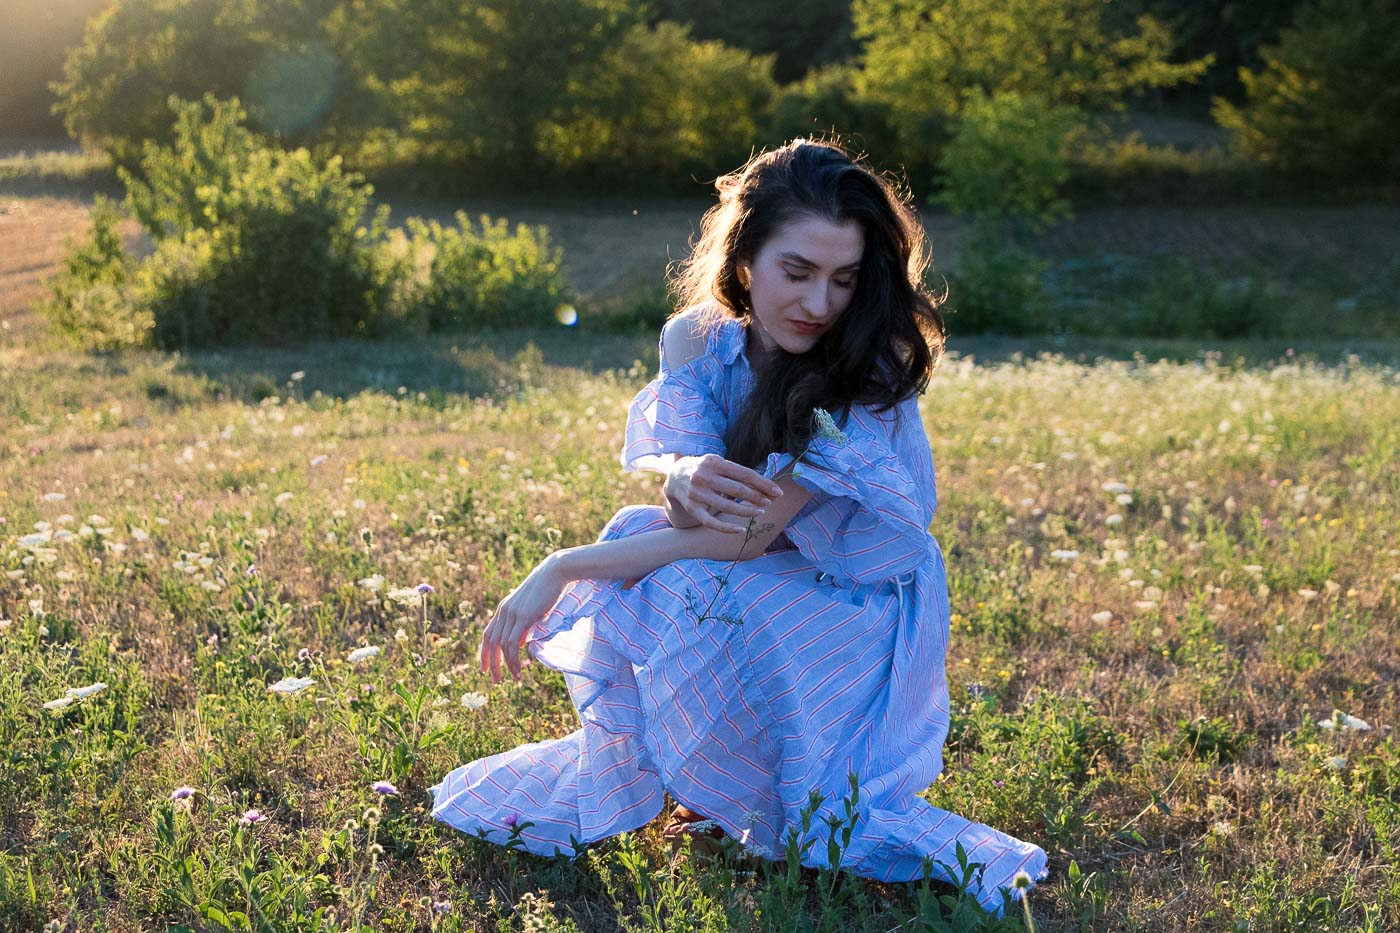 Fashion Blogger Veronika Lipar of Brunette from Wall Street wearing striped ruffled cold shoulder dress and blue eye makeup in the golden hour on the meadow